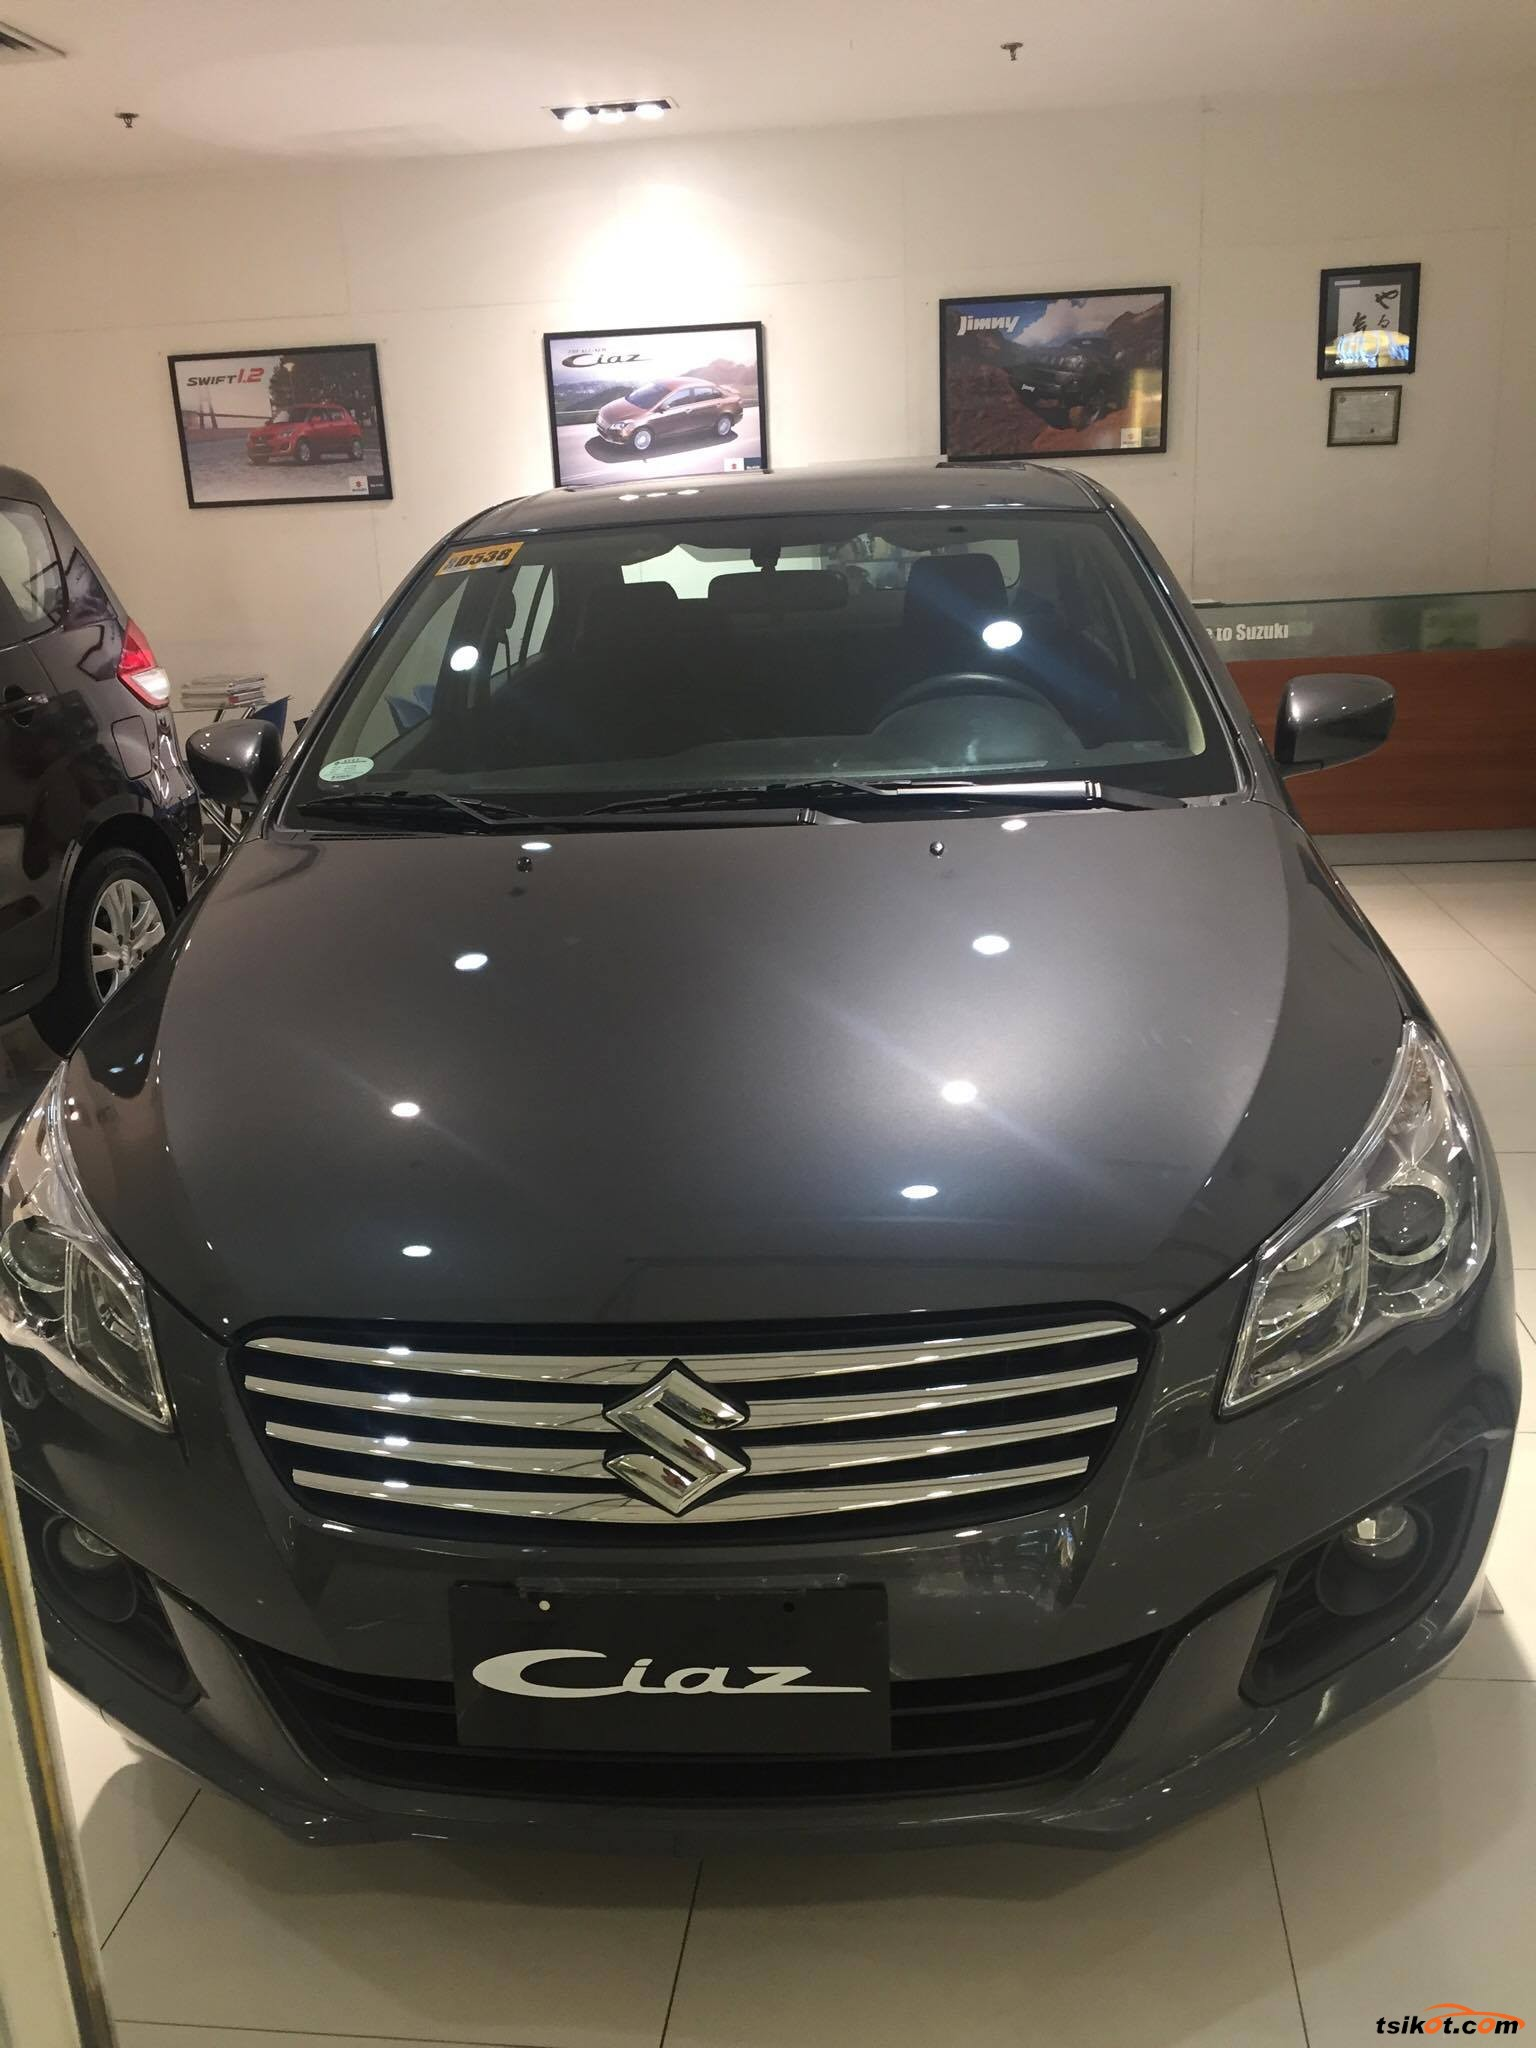 Bank Street Mitsubishi >> Suzuki Ciaz 2017 - Car for Sale Metro Manila